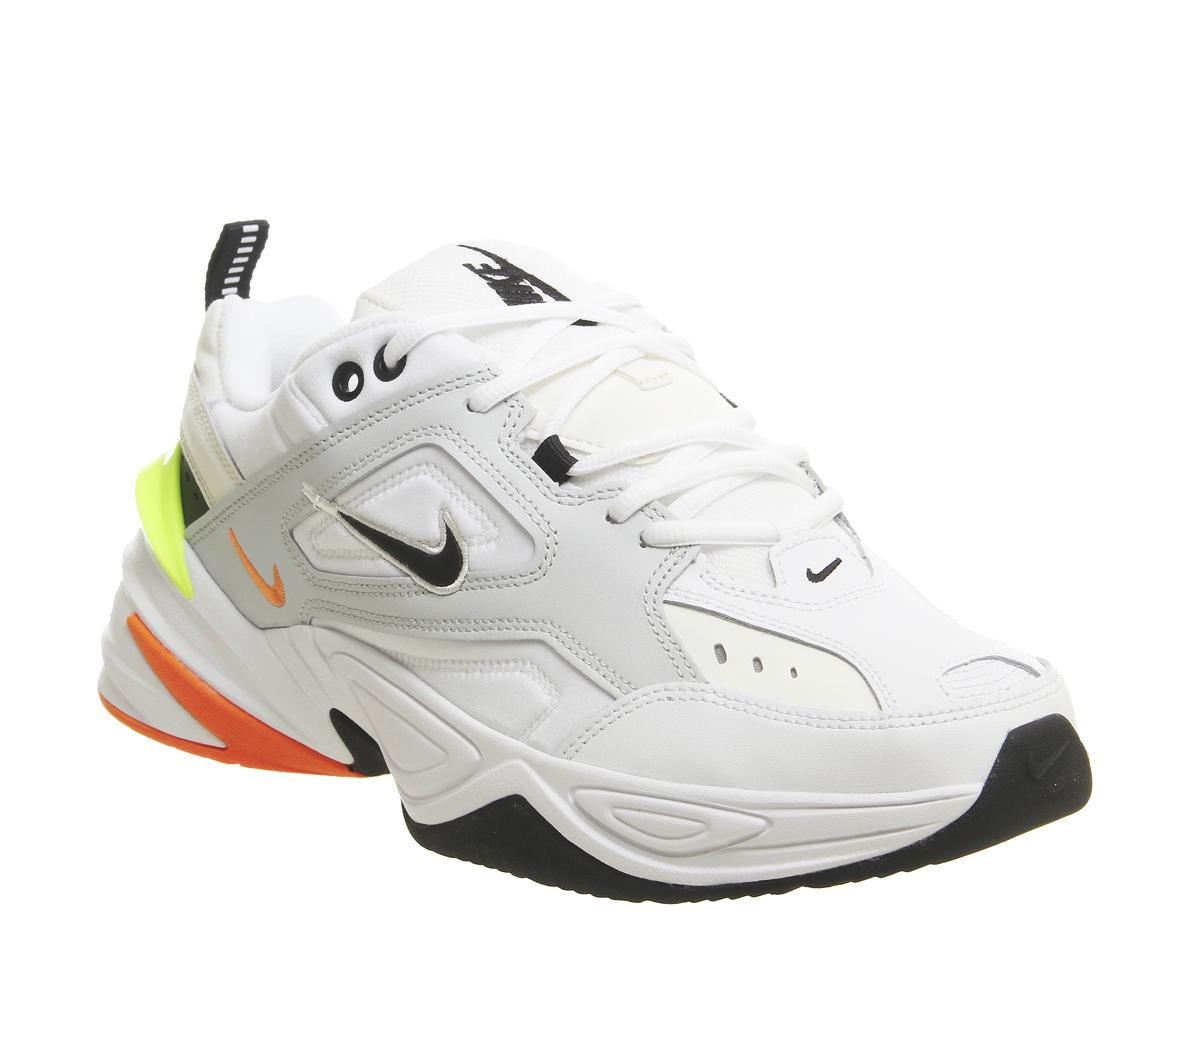 half off de206 bf581 Mens Nike M2K Tekno Pure Platinum Black Sail White Total Uk Size 9 –  OFFCUTS SHOES by OFFICE